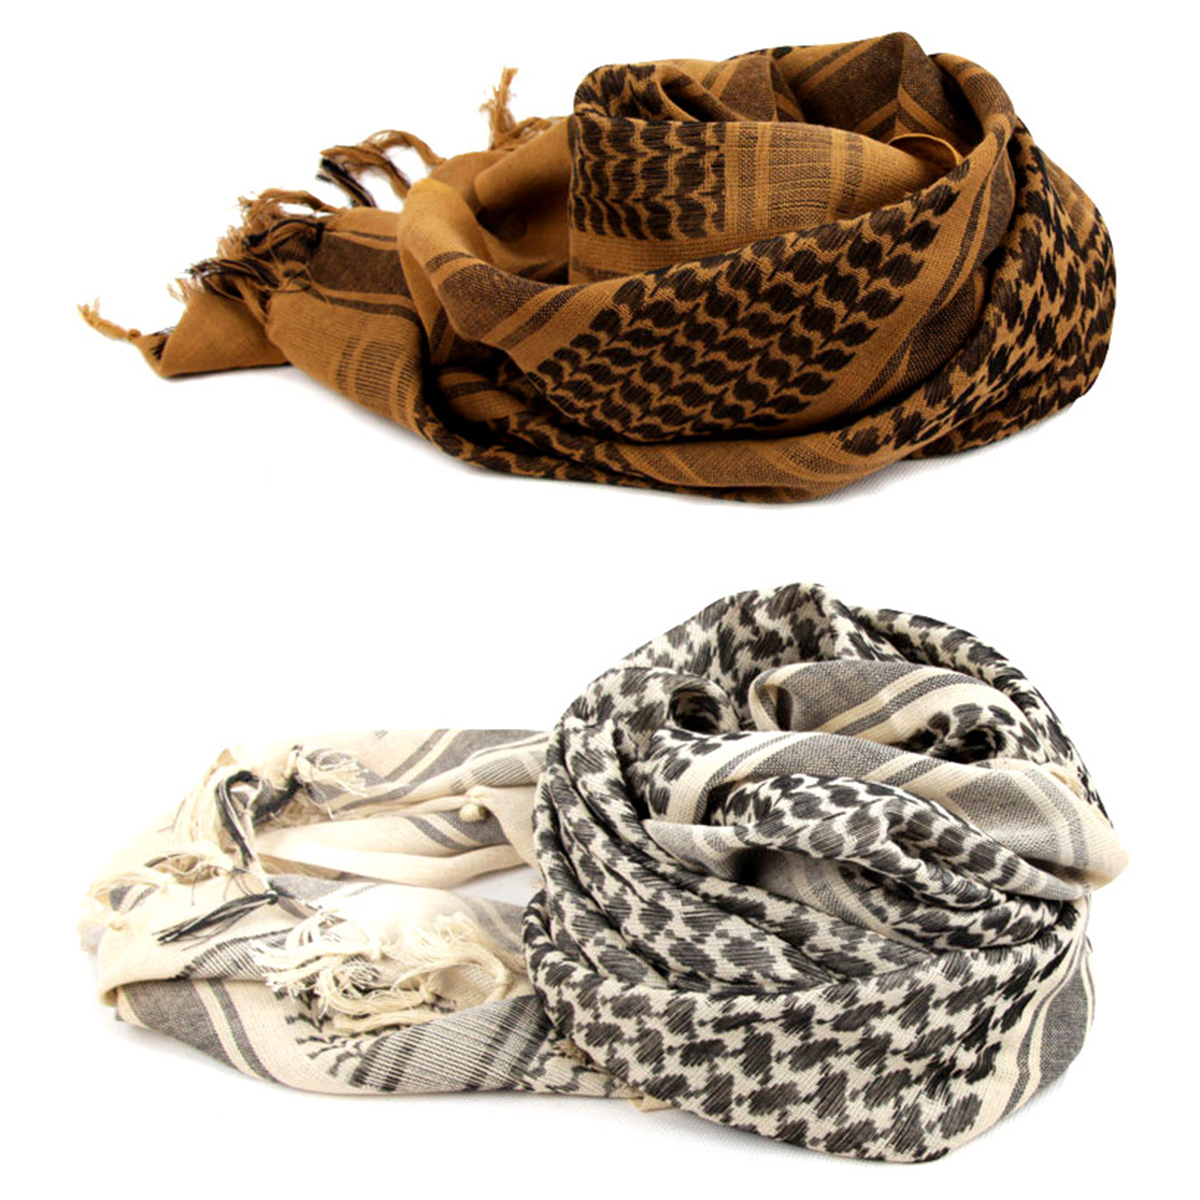 Hunting Army Military Tactical Keffiyeh Shemagh Desert Arab Scarf Shawl Neck Cover Head Wrap Hiking Airsoft Shooting Accessories